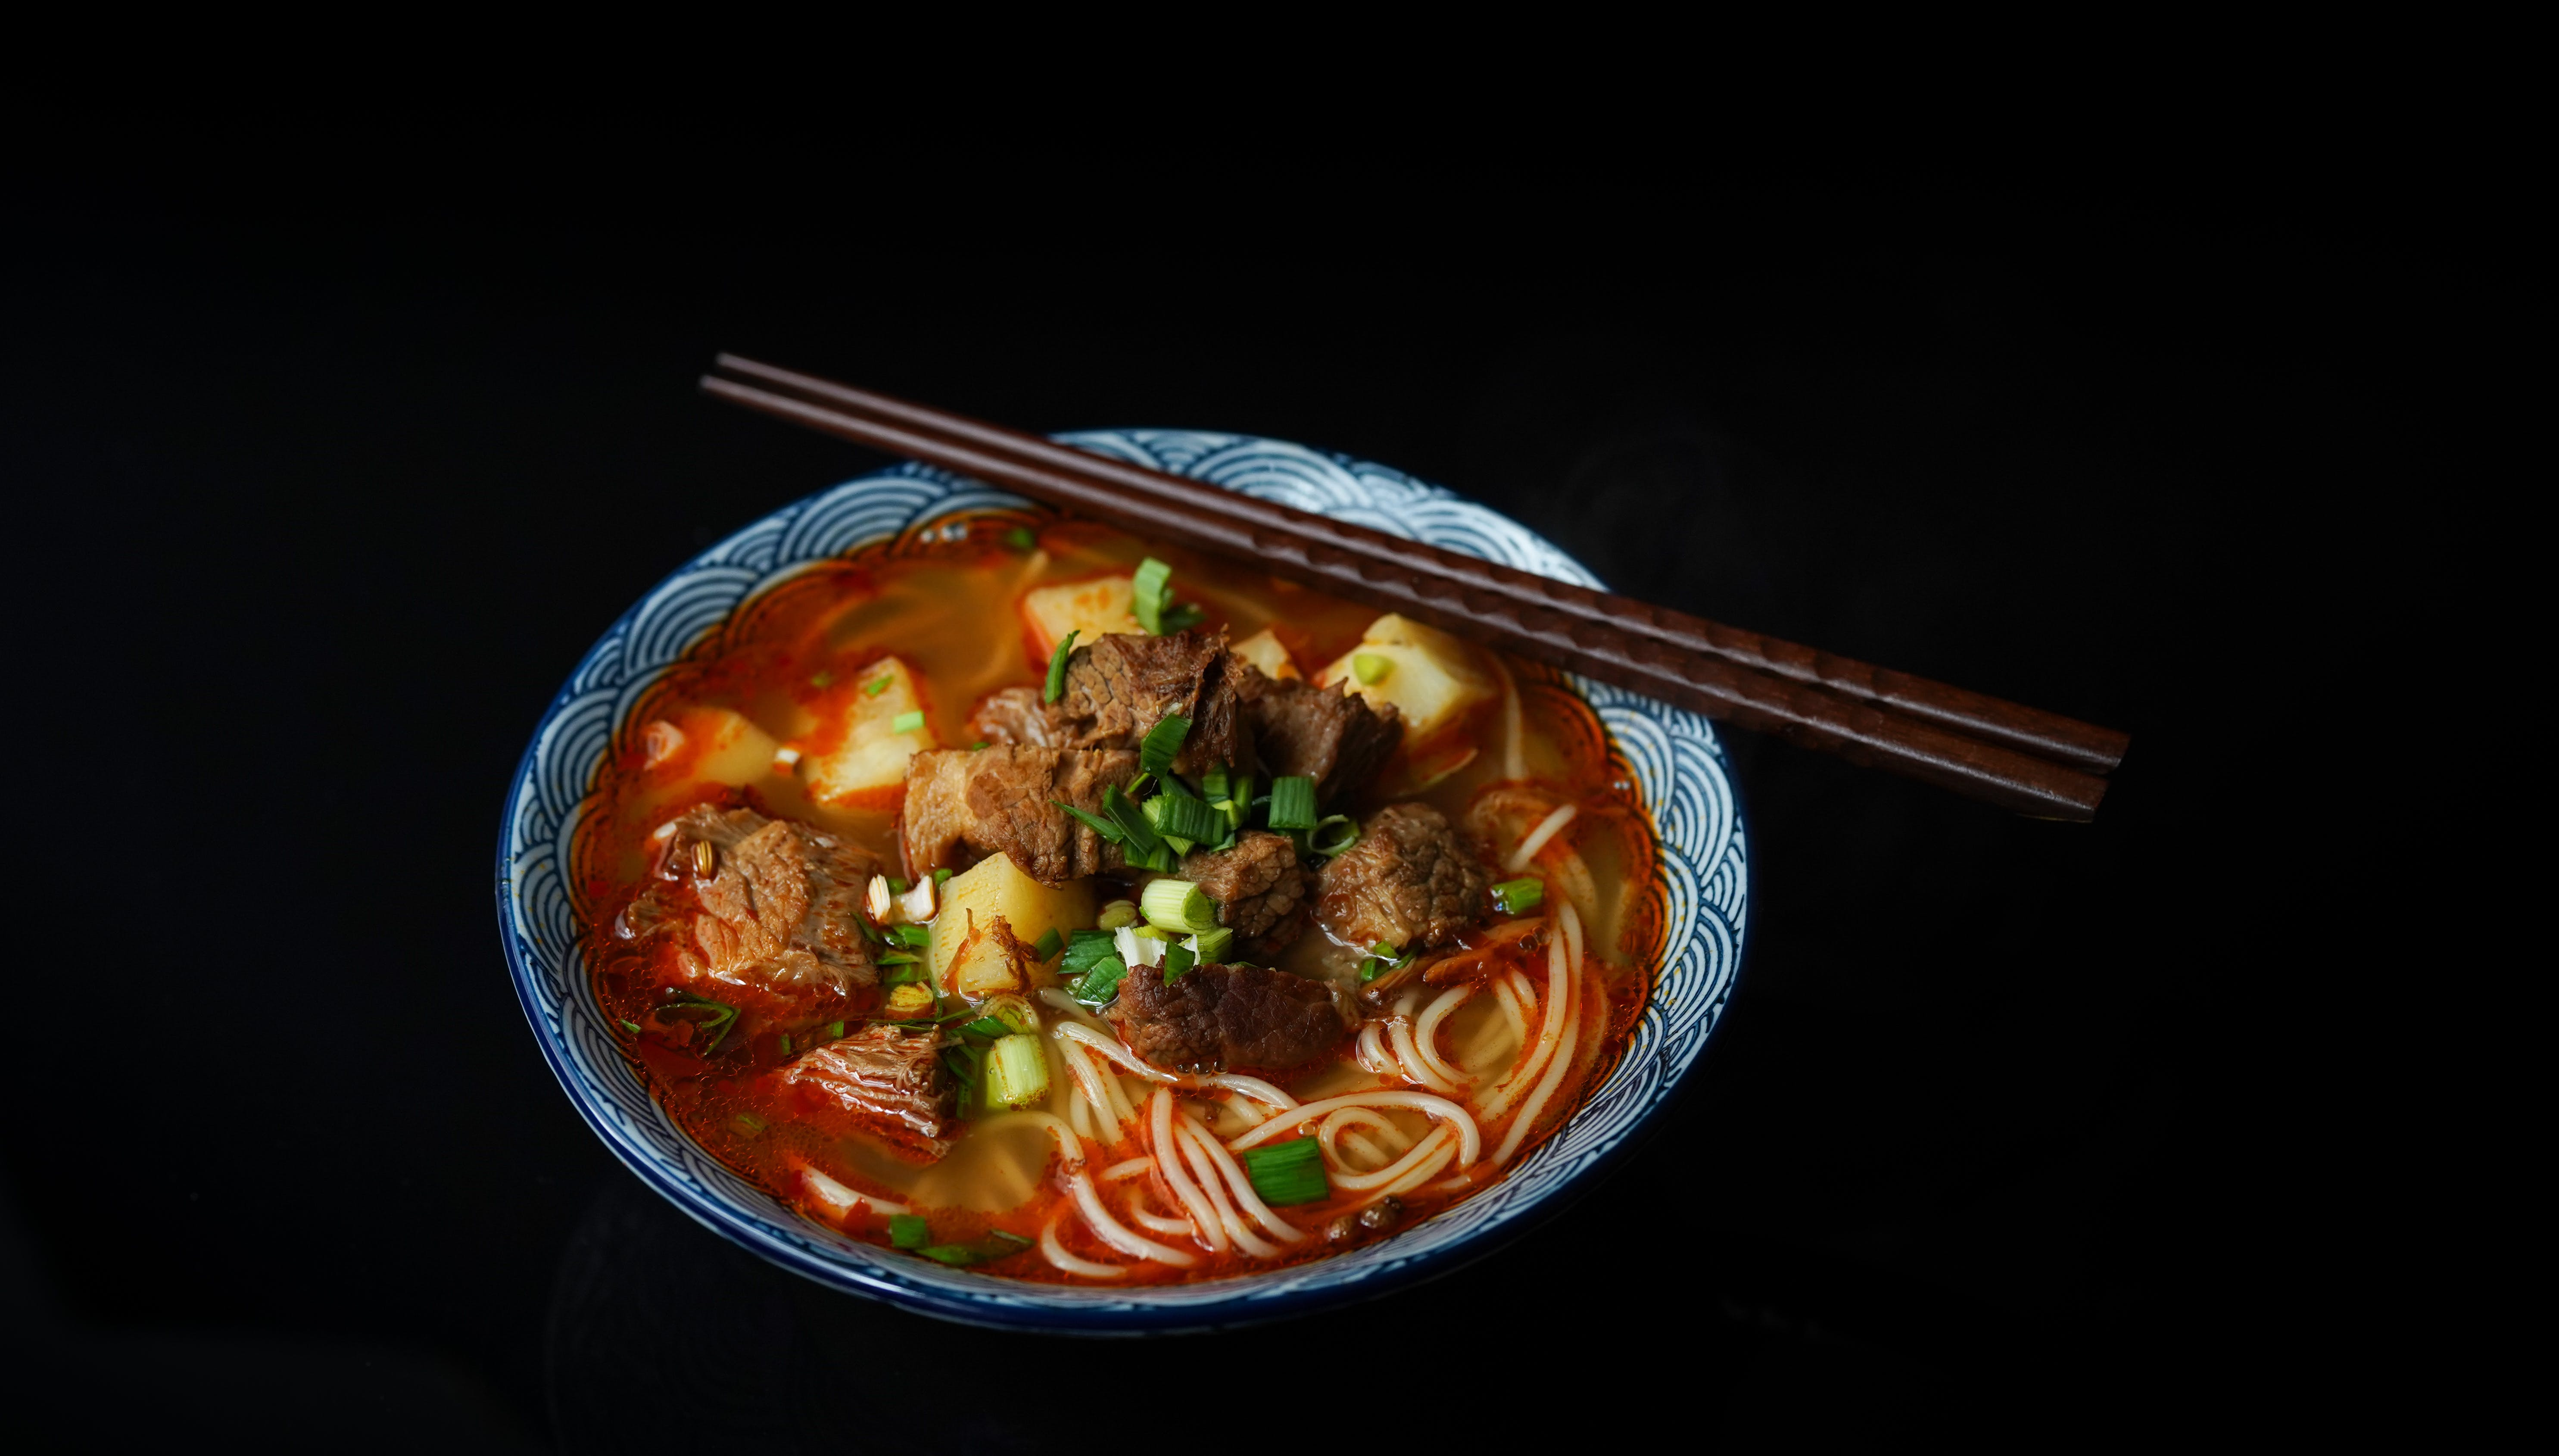 Free stock photo of noodles